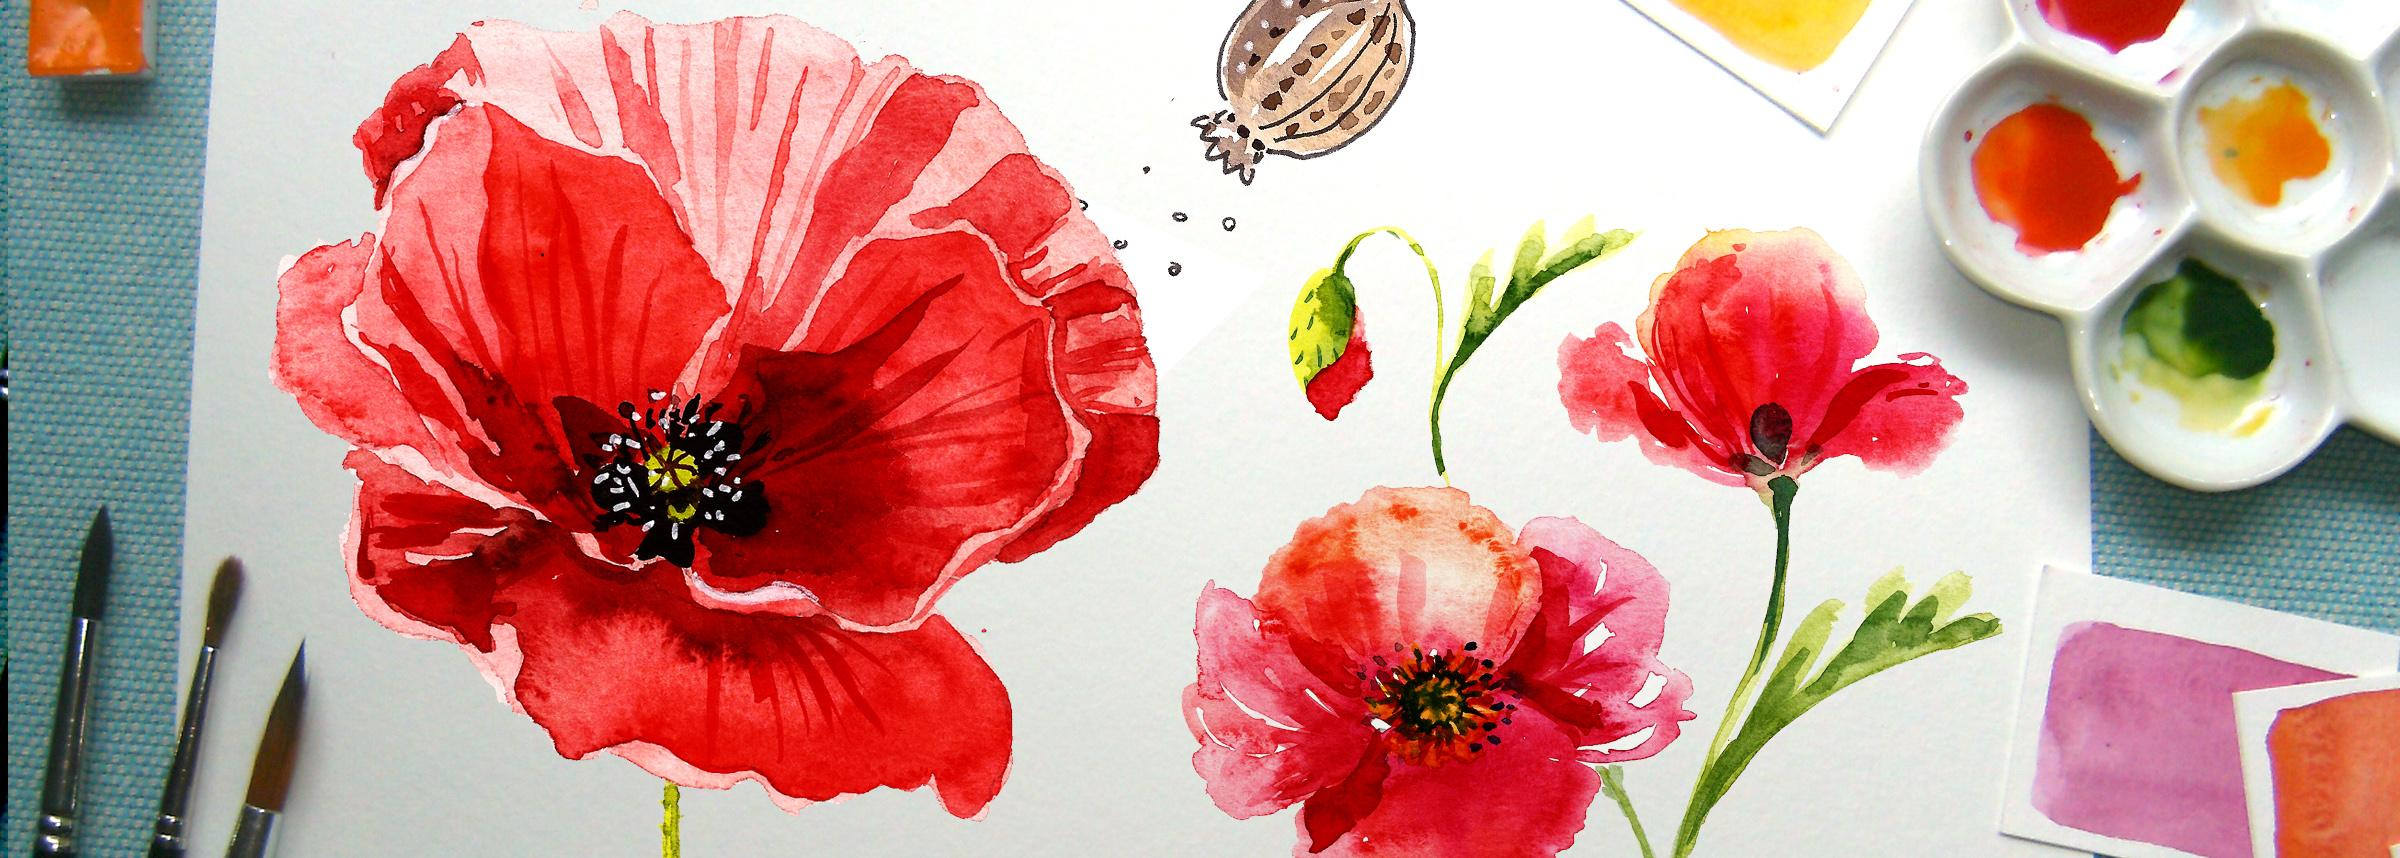 Painting a watercolor poppy explore 3 watercolor styles irina the poppy painting will make a beautiful addition to your creative portfolio or to your wall art collection mightylinksfo